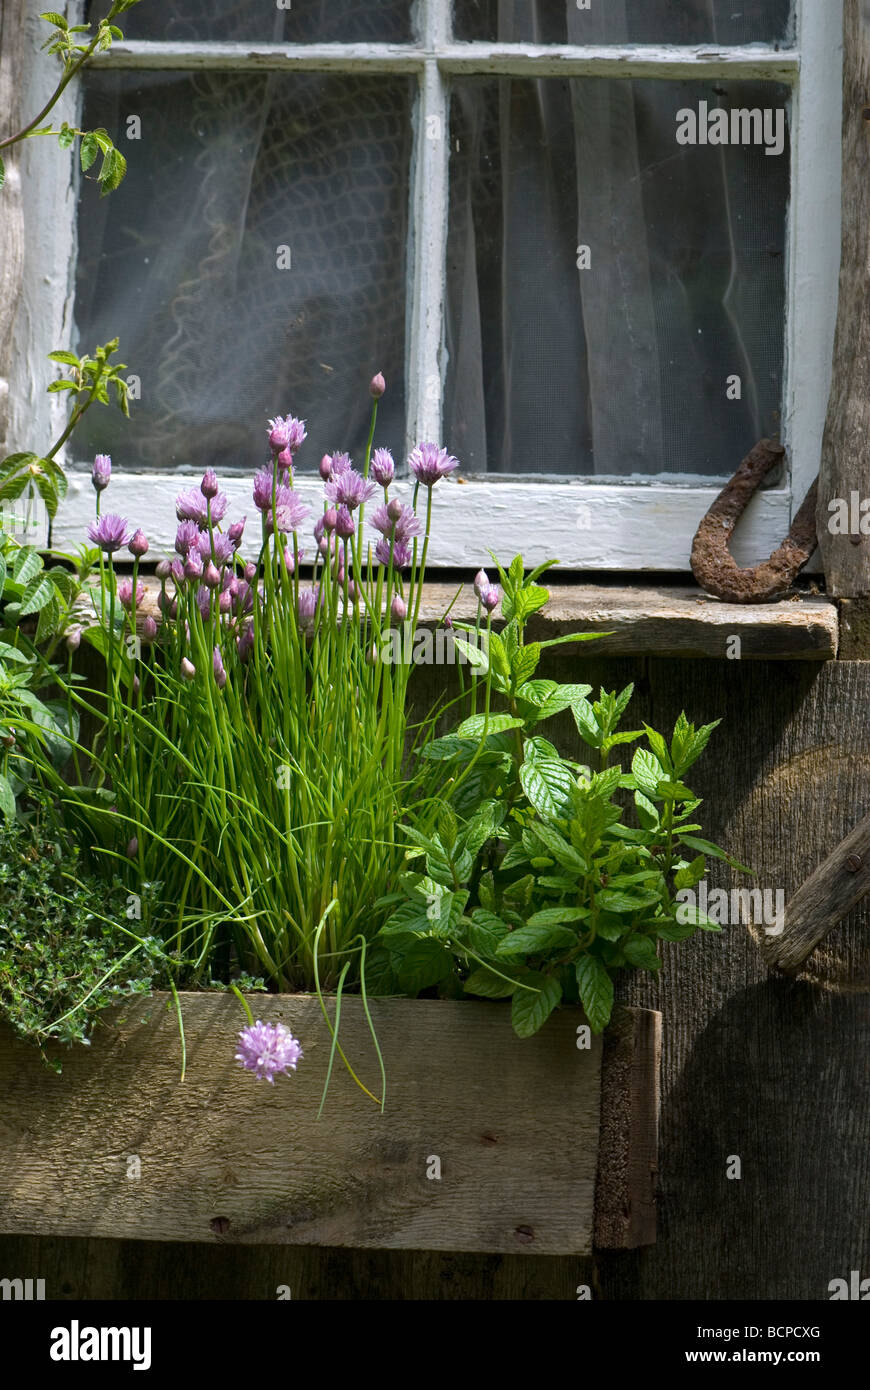 Windowbox with herbs by window - Stock Image